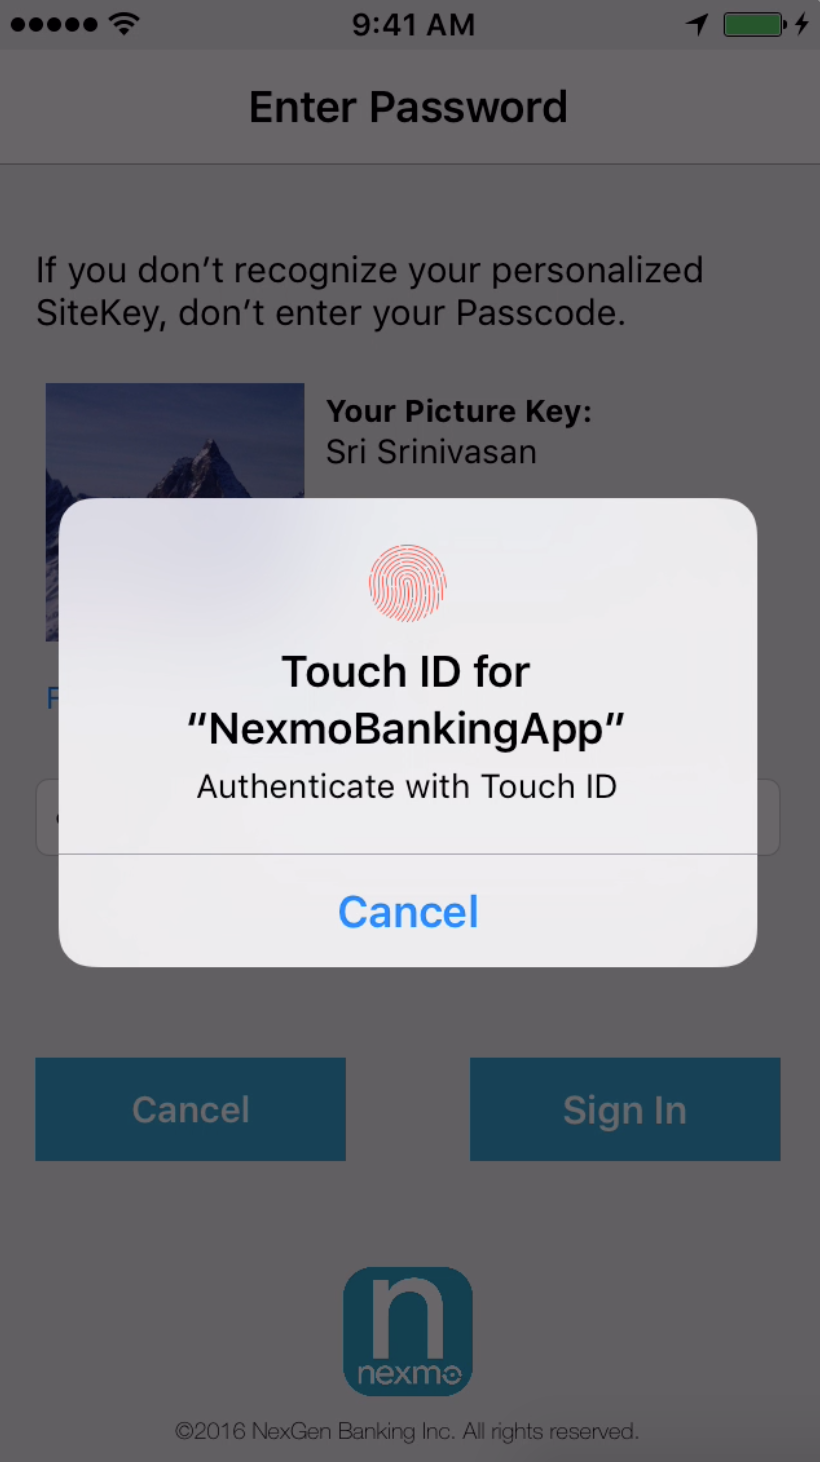 Touch ID requested